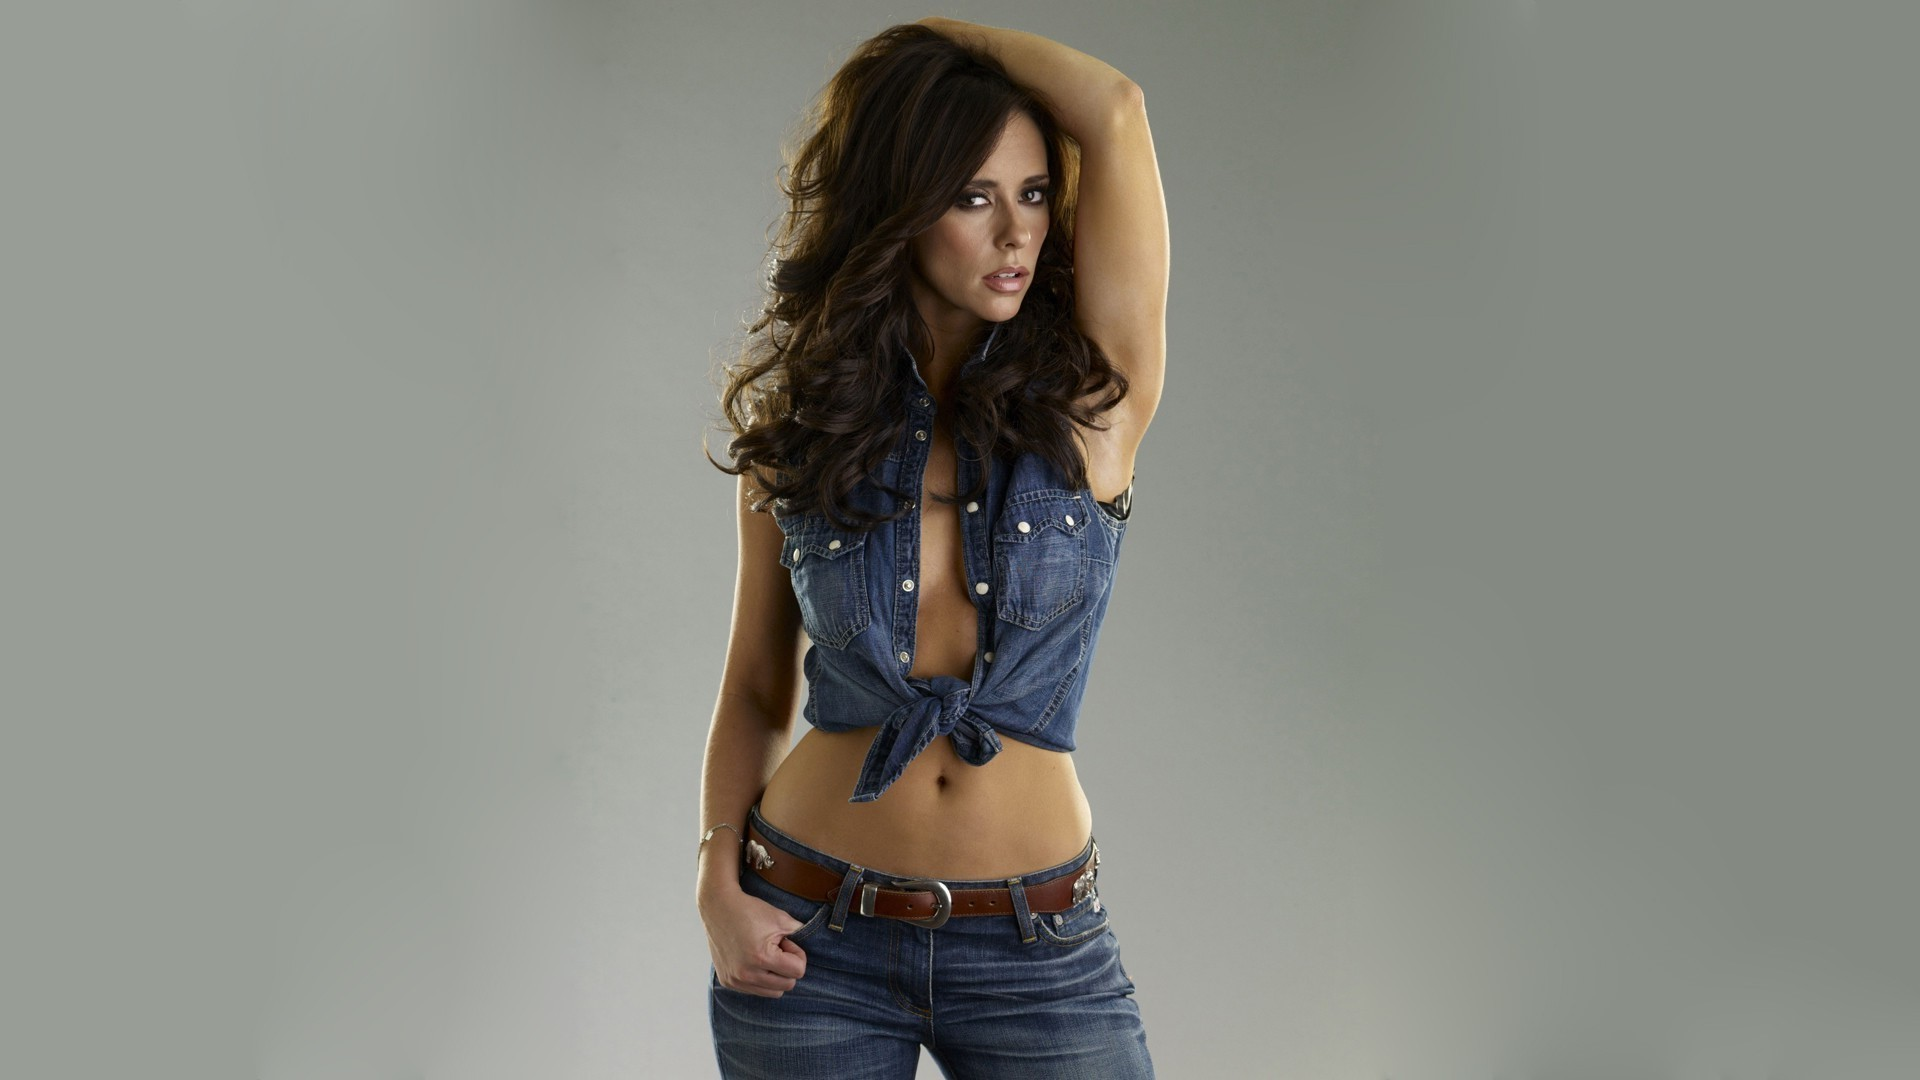 Jennifer Love Hewitt HD Wallpapers 2